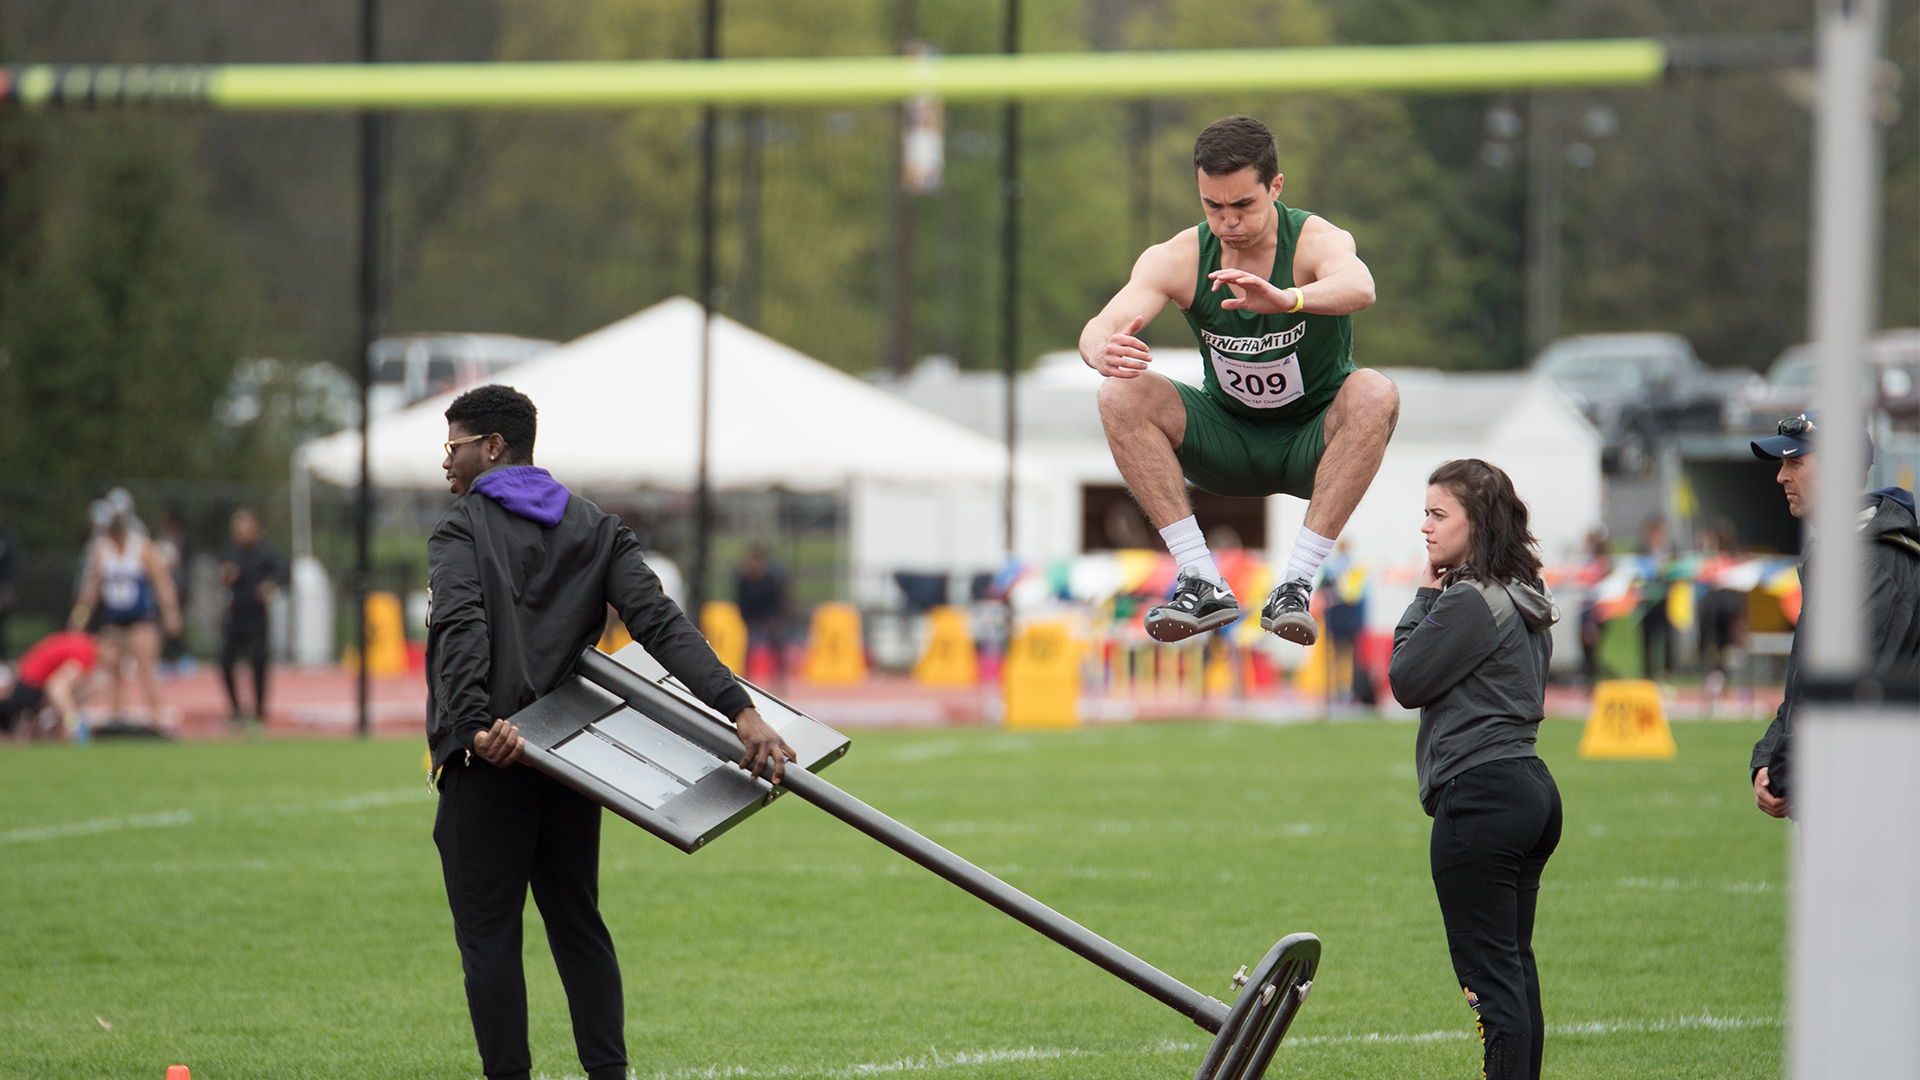 Jack Fitzgerald Men S Track And Field Binghamton University Images, Photos, Reviews